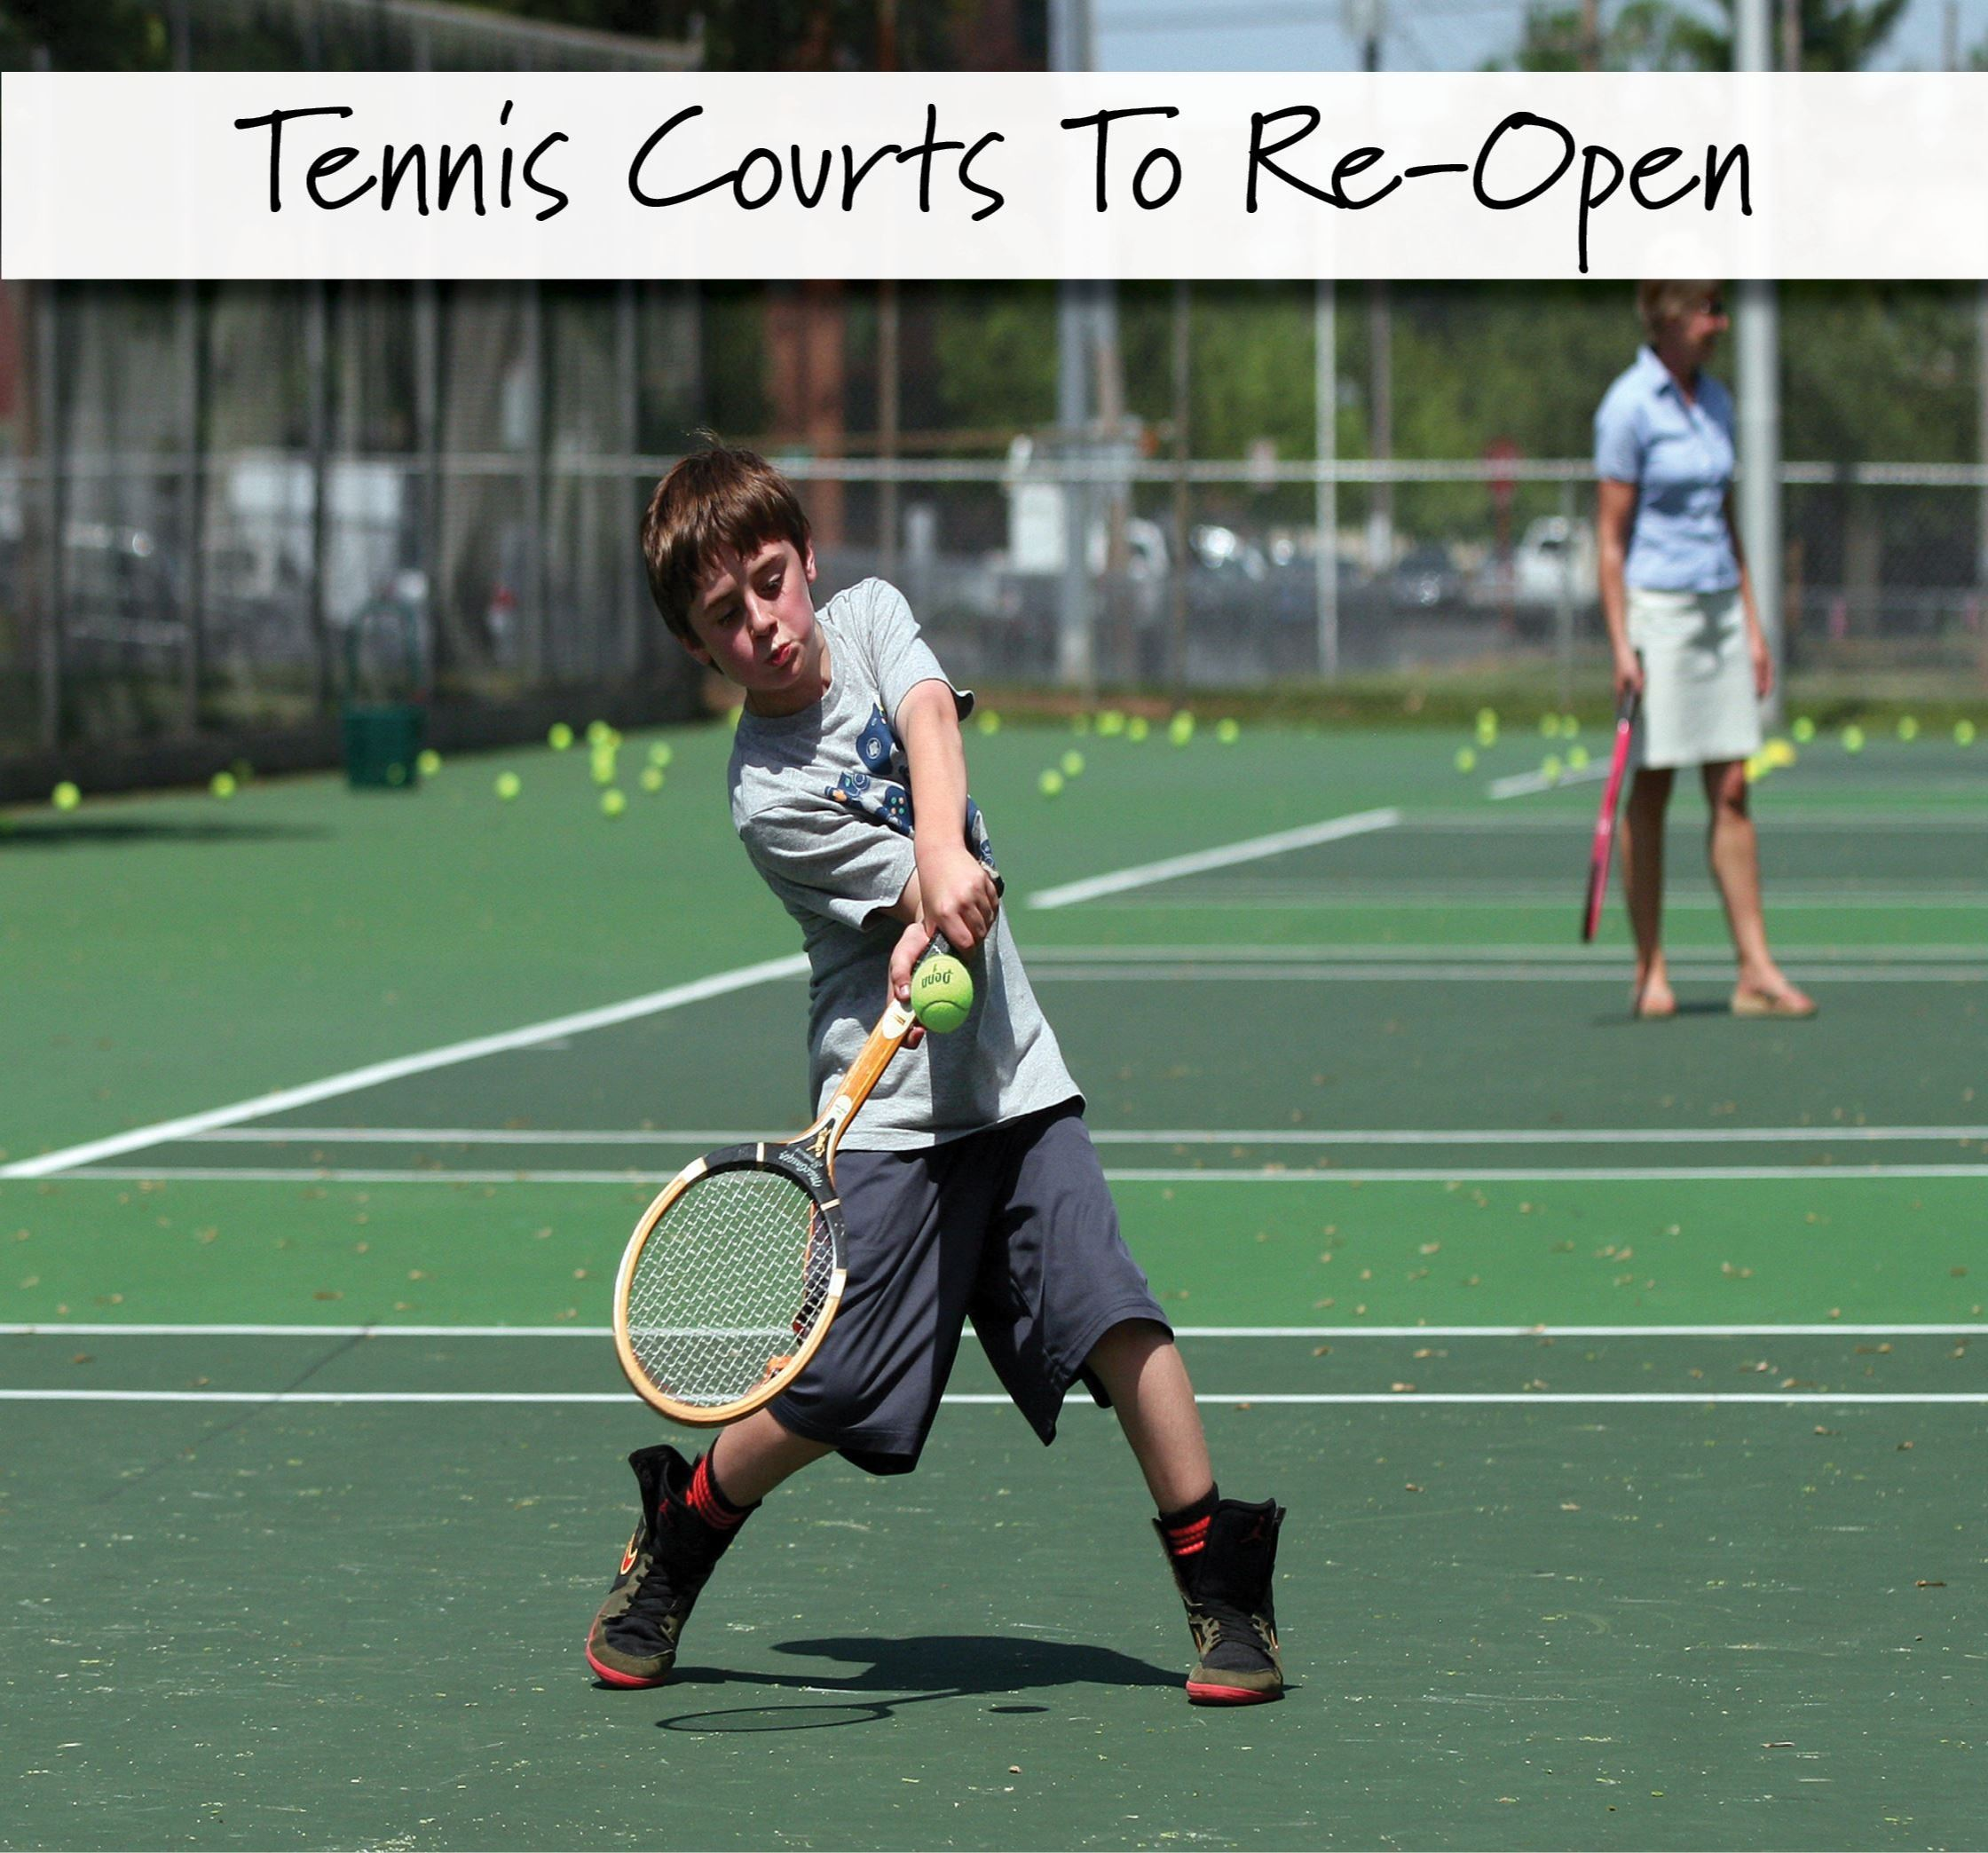 Tennis Courts Reopen 5.19320